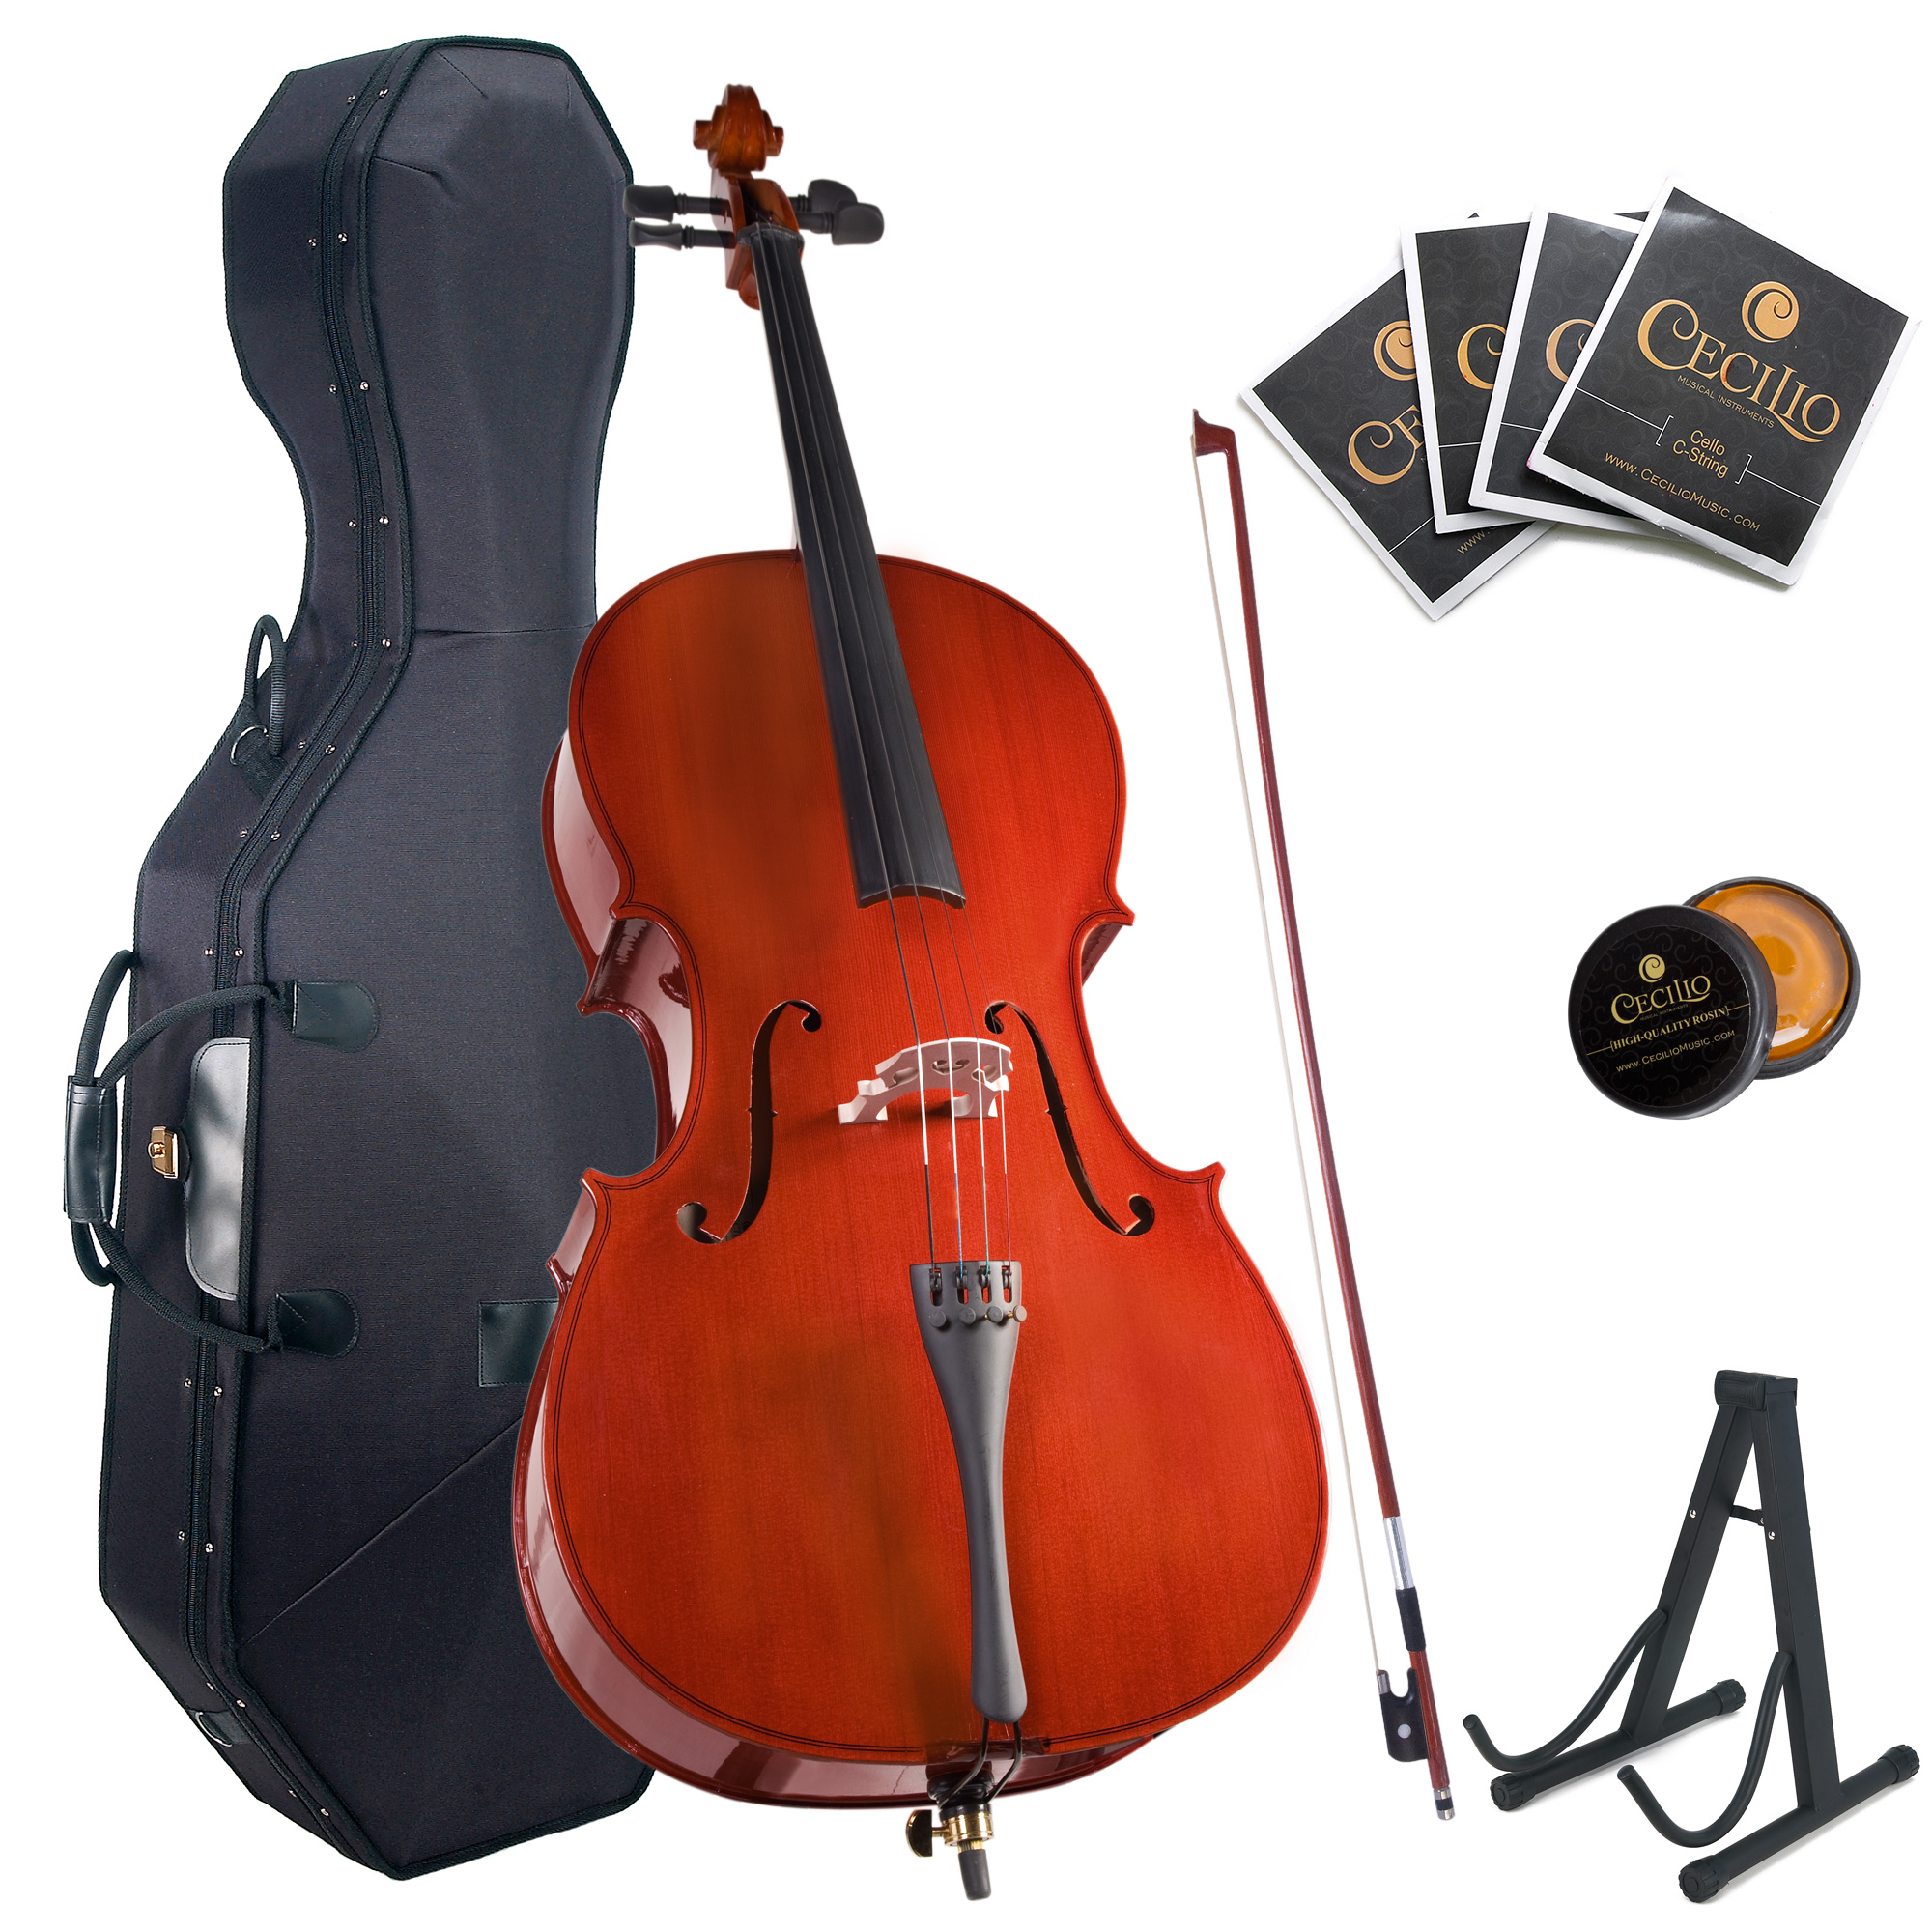 Cecilio Full Size 4/4 CCO-100 Student Cello with Hard & Soft Case, Stand, Extra